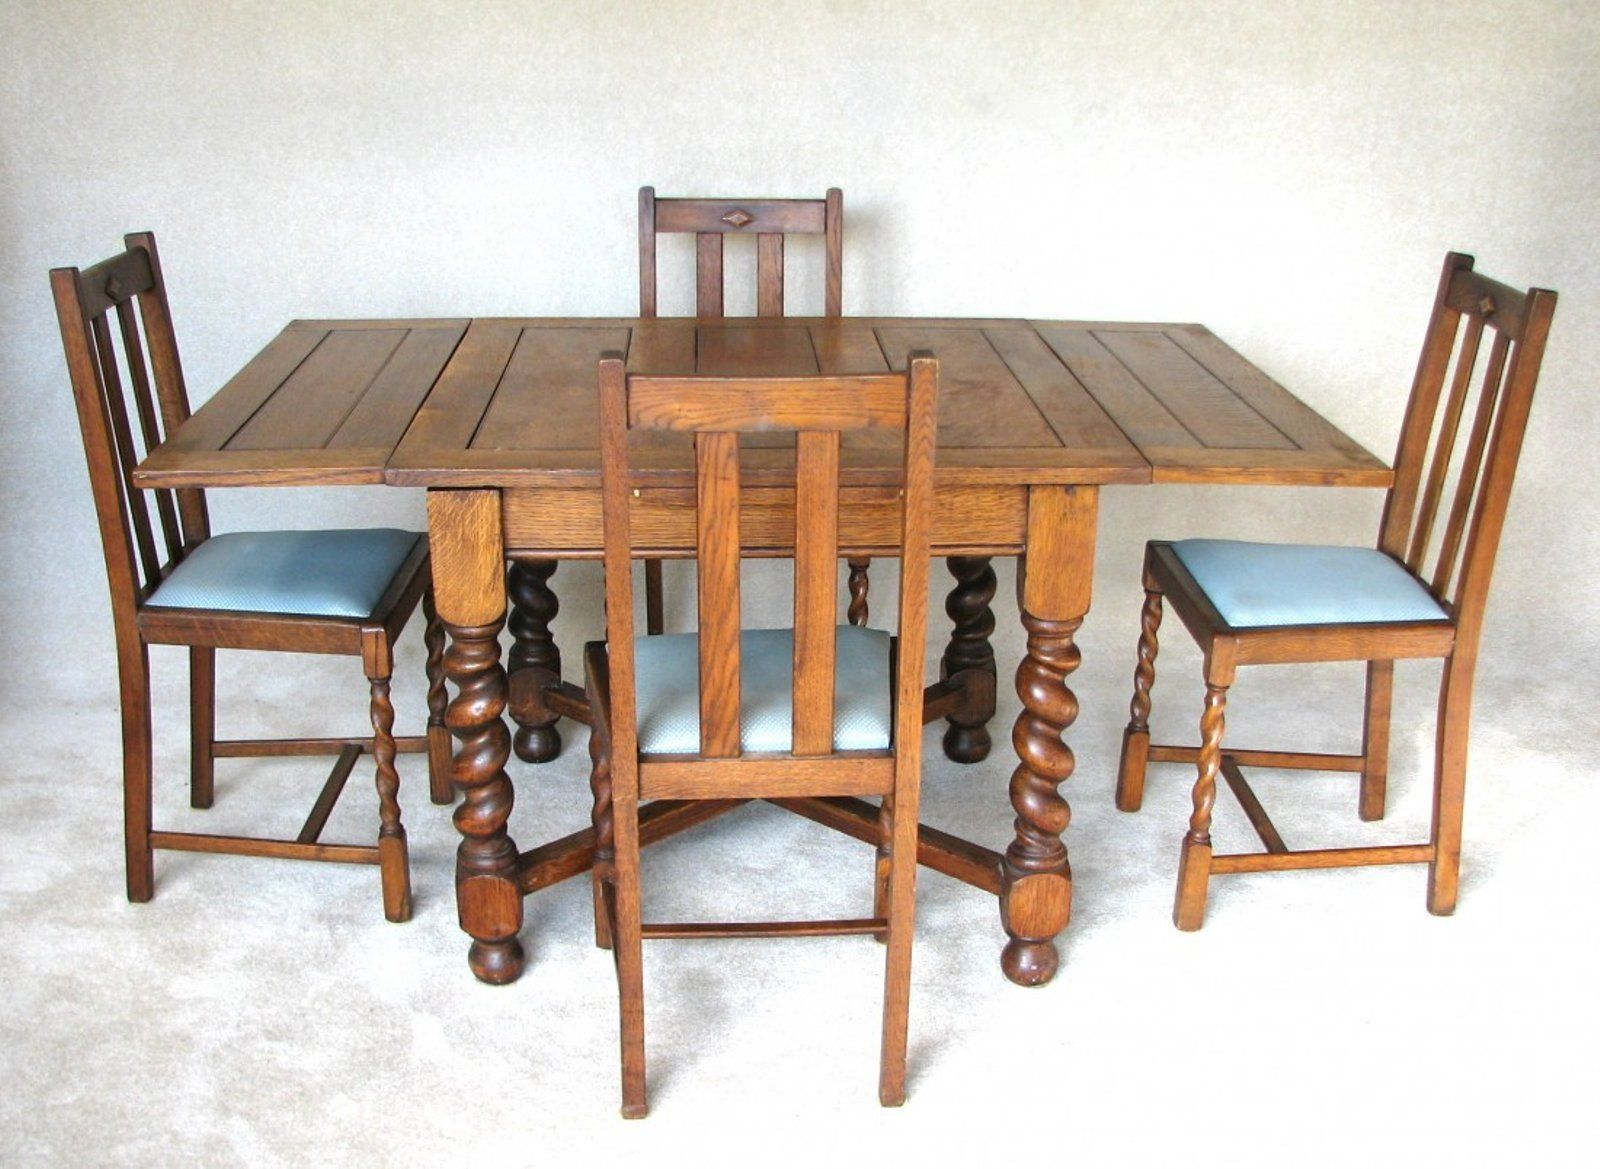 Vintage Blue Formica Table With Chairs Vintage Kitchen Table